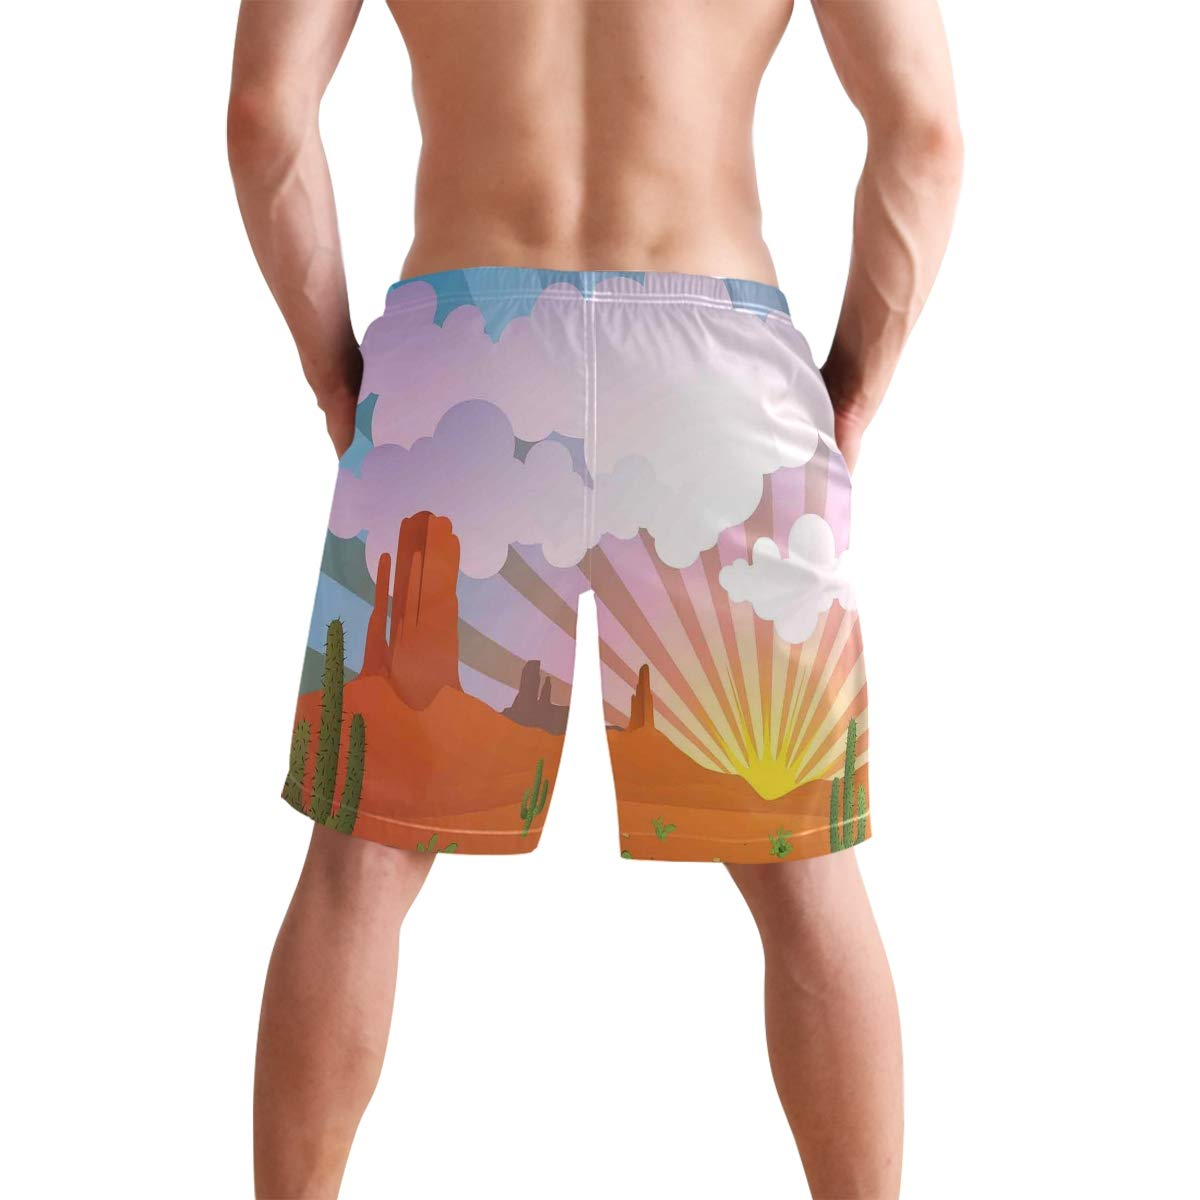 COVASA Mens Summer ShortsAbstract Curved Thin Stripes Color Line Concept Art C